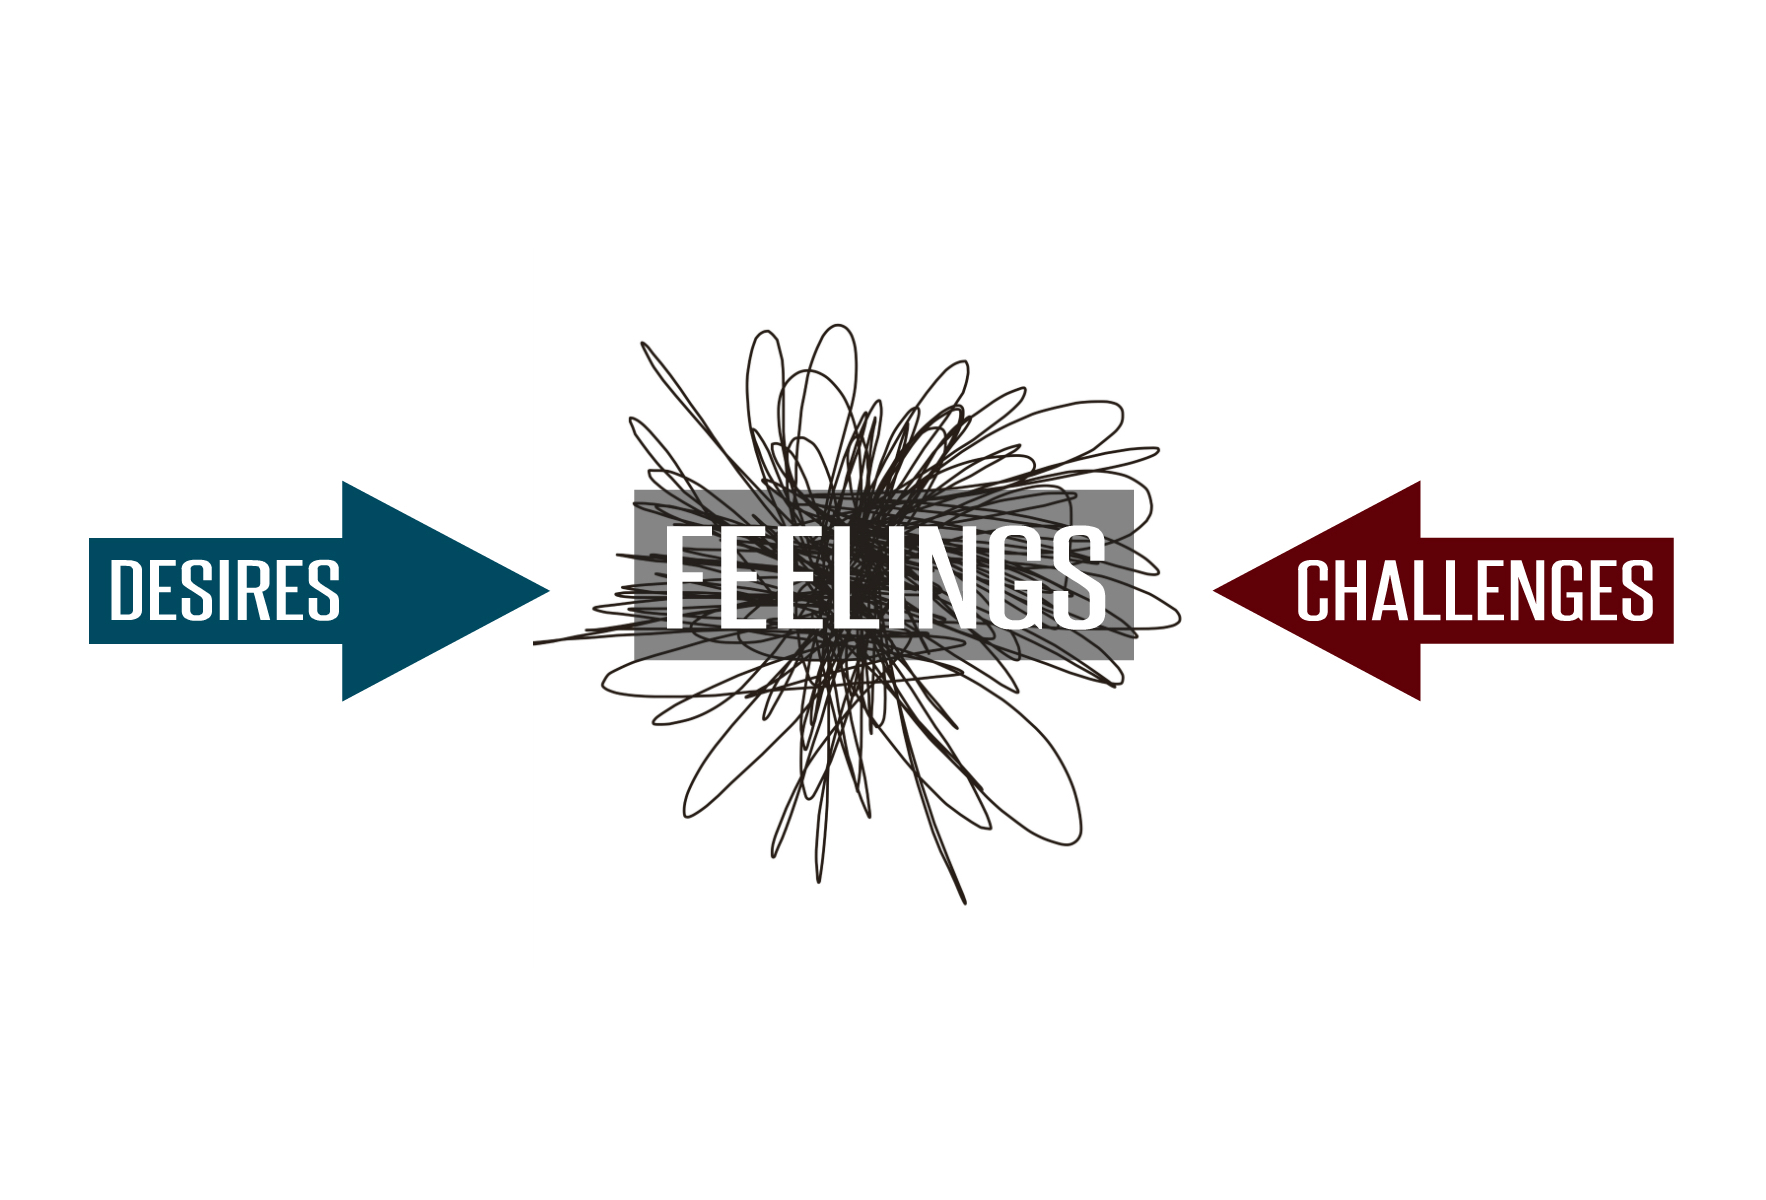 Three Spiritual Signals: Desires, Feelings, and Challenges